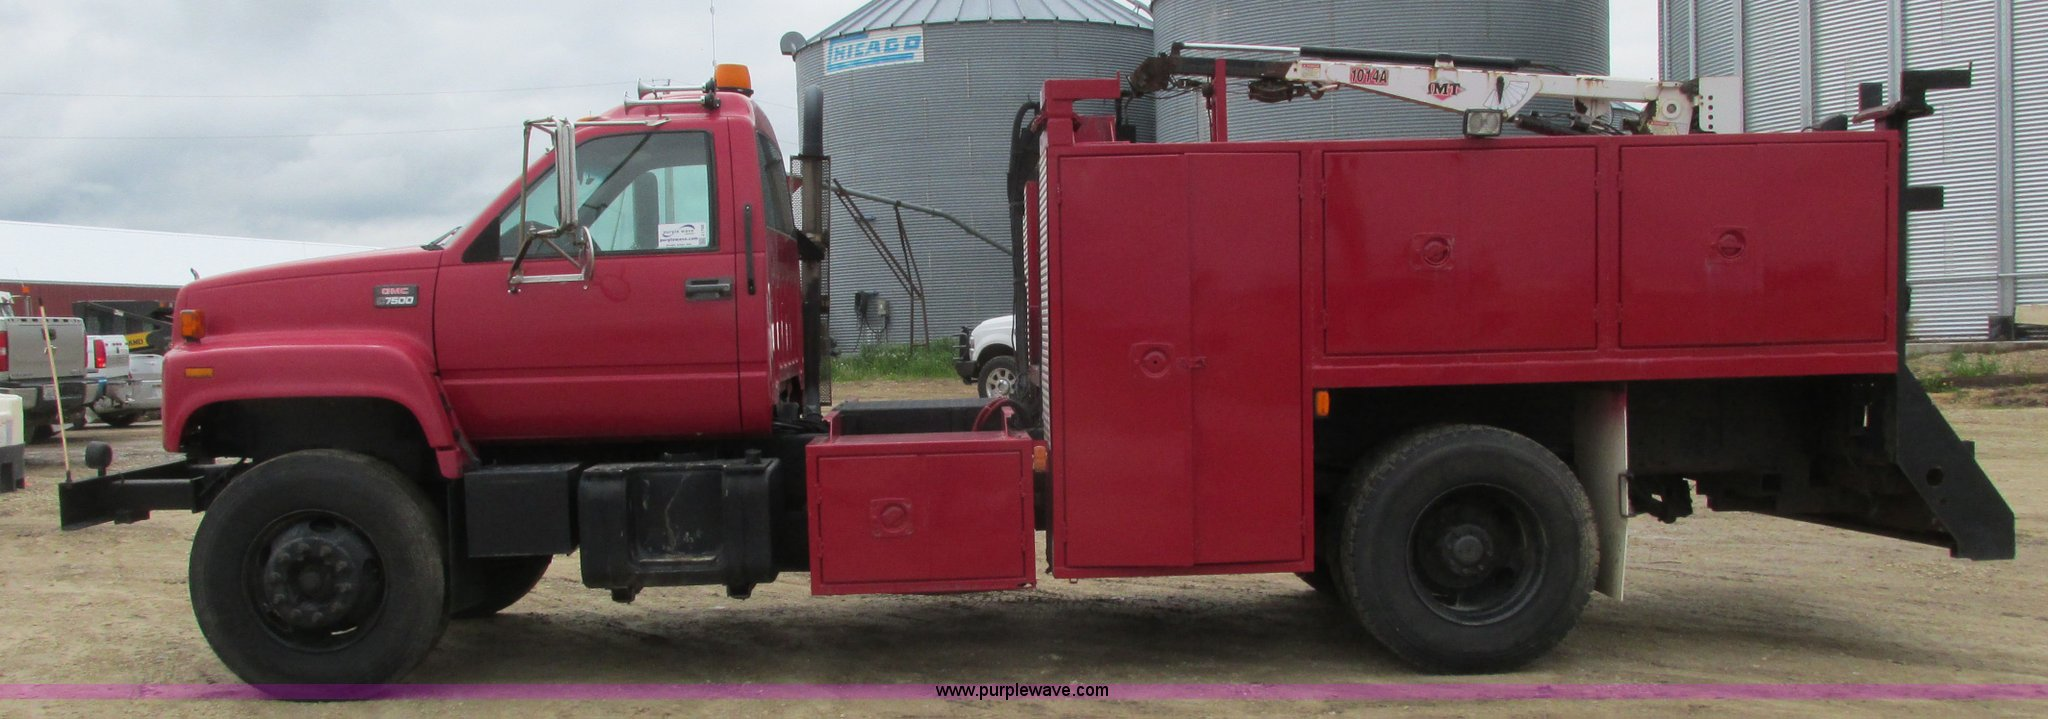 ... 2000 GMC C7500 service truck with crane Full size in new window ...